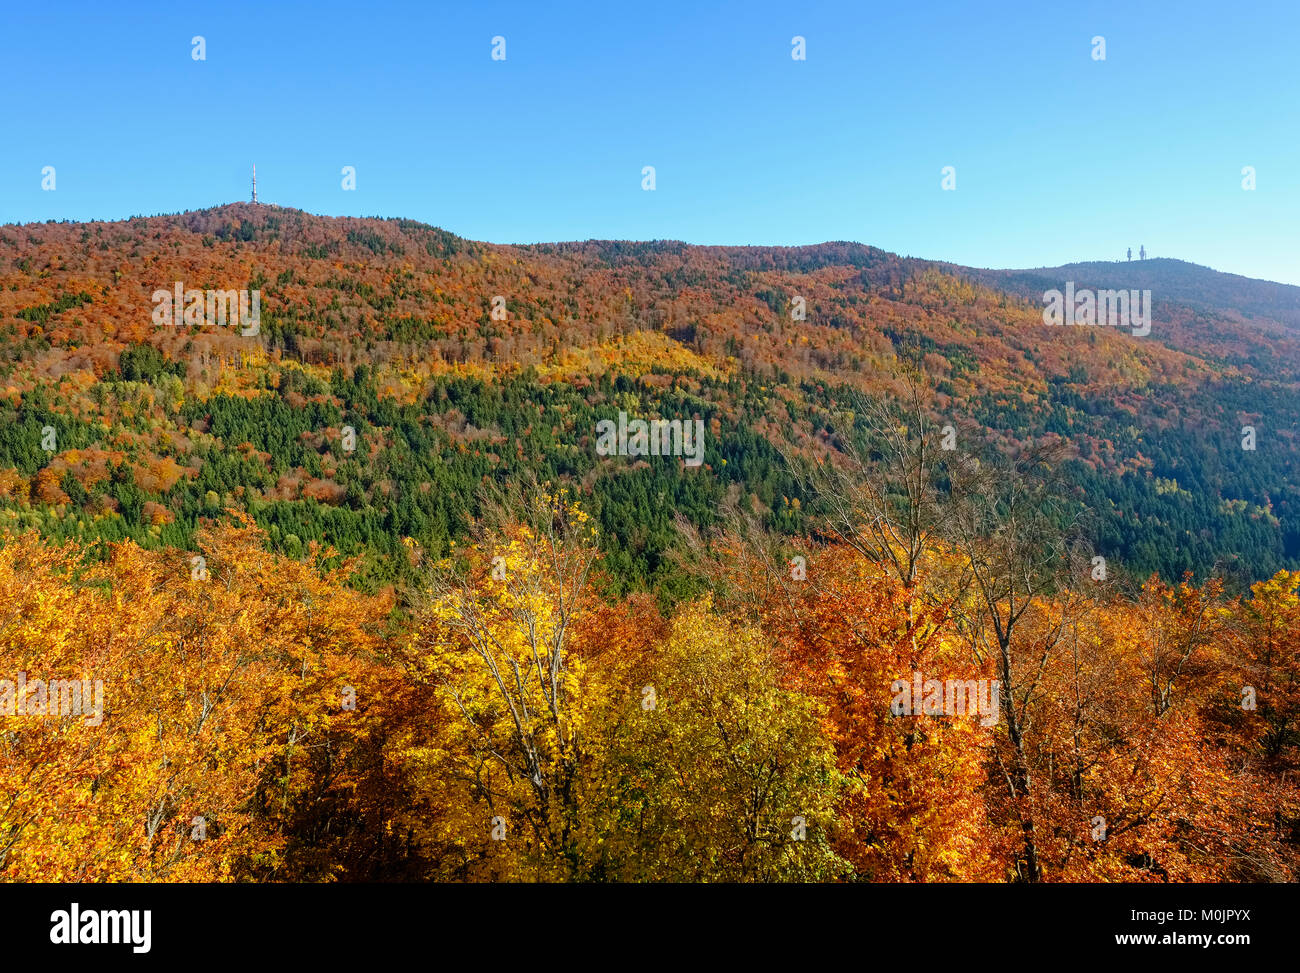 High arch, view from Lichteneck Castle, near Rimbach, Bavarian Forest, Upper Palatinate, Bavaria, Germany - Stock Image